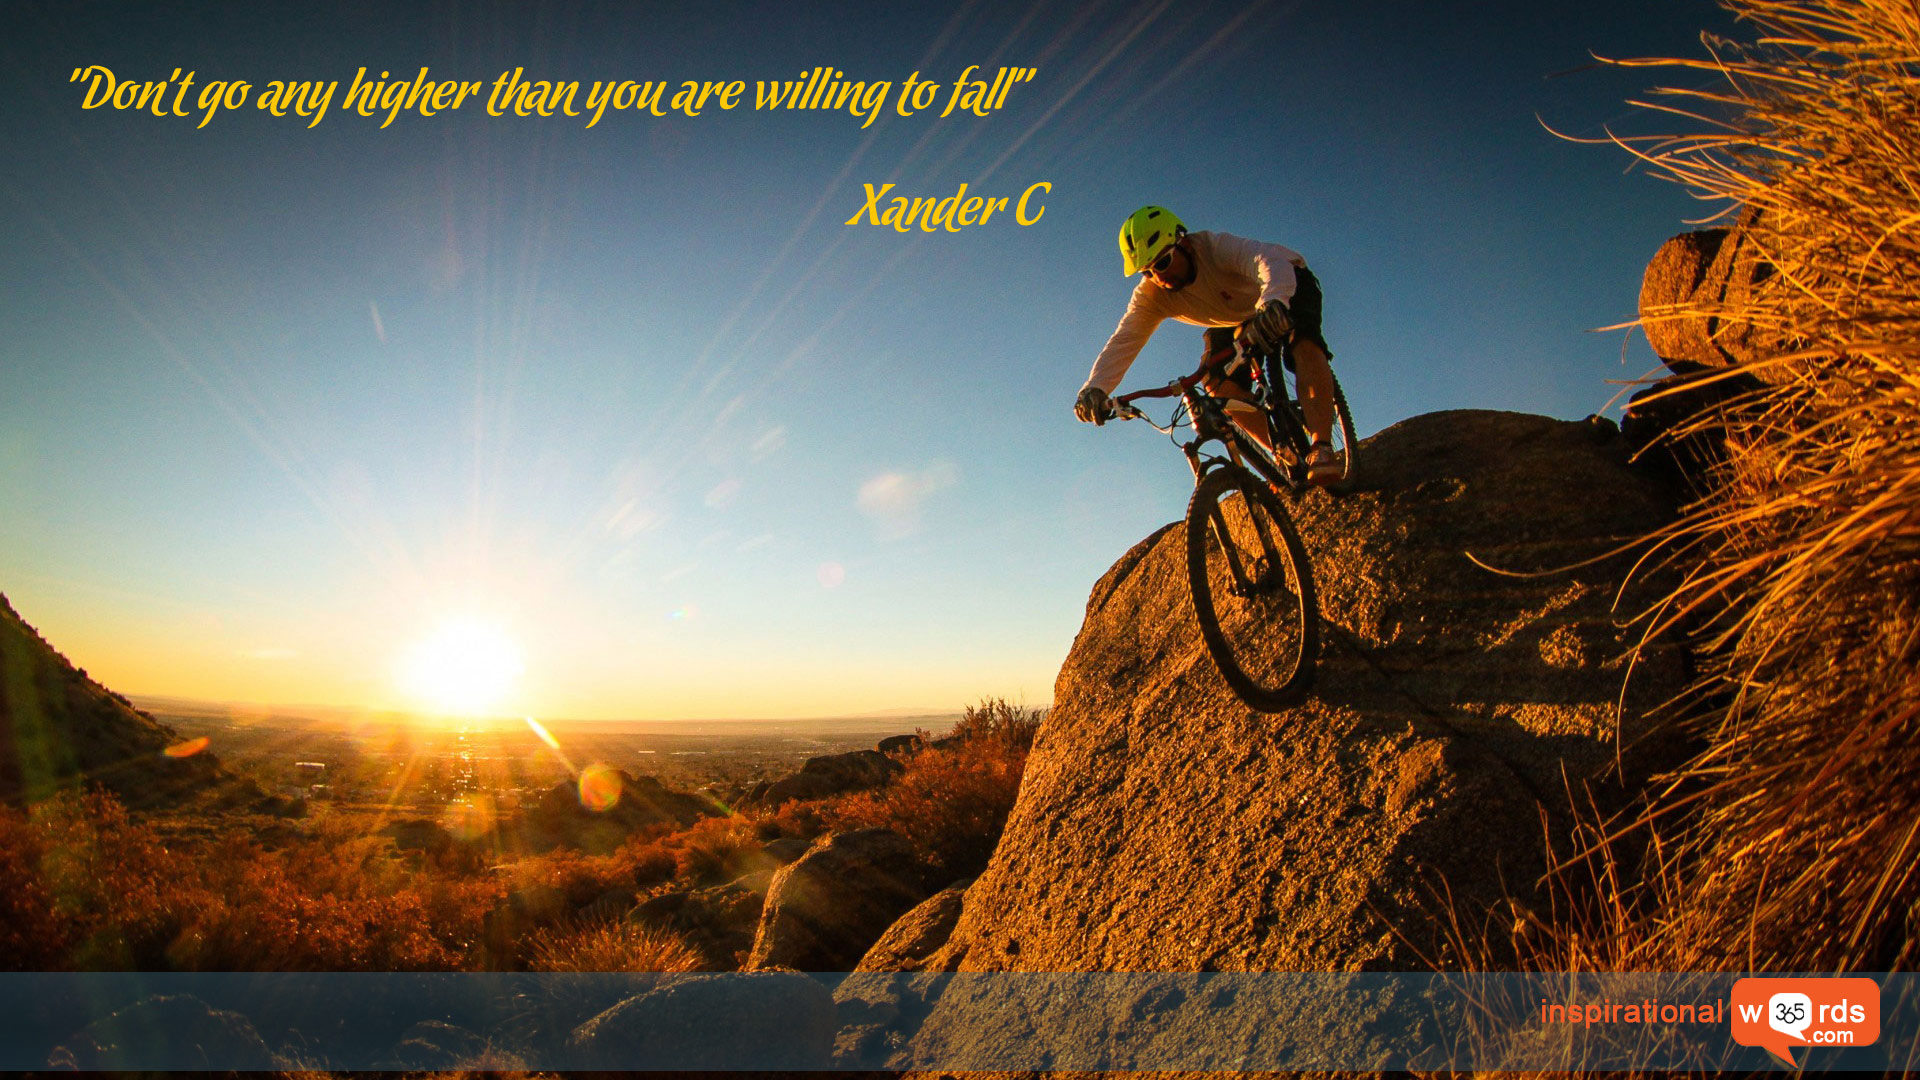 Inspirational Wallpaper Quote by Xander C